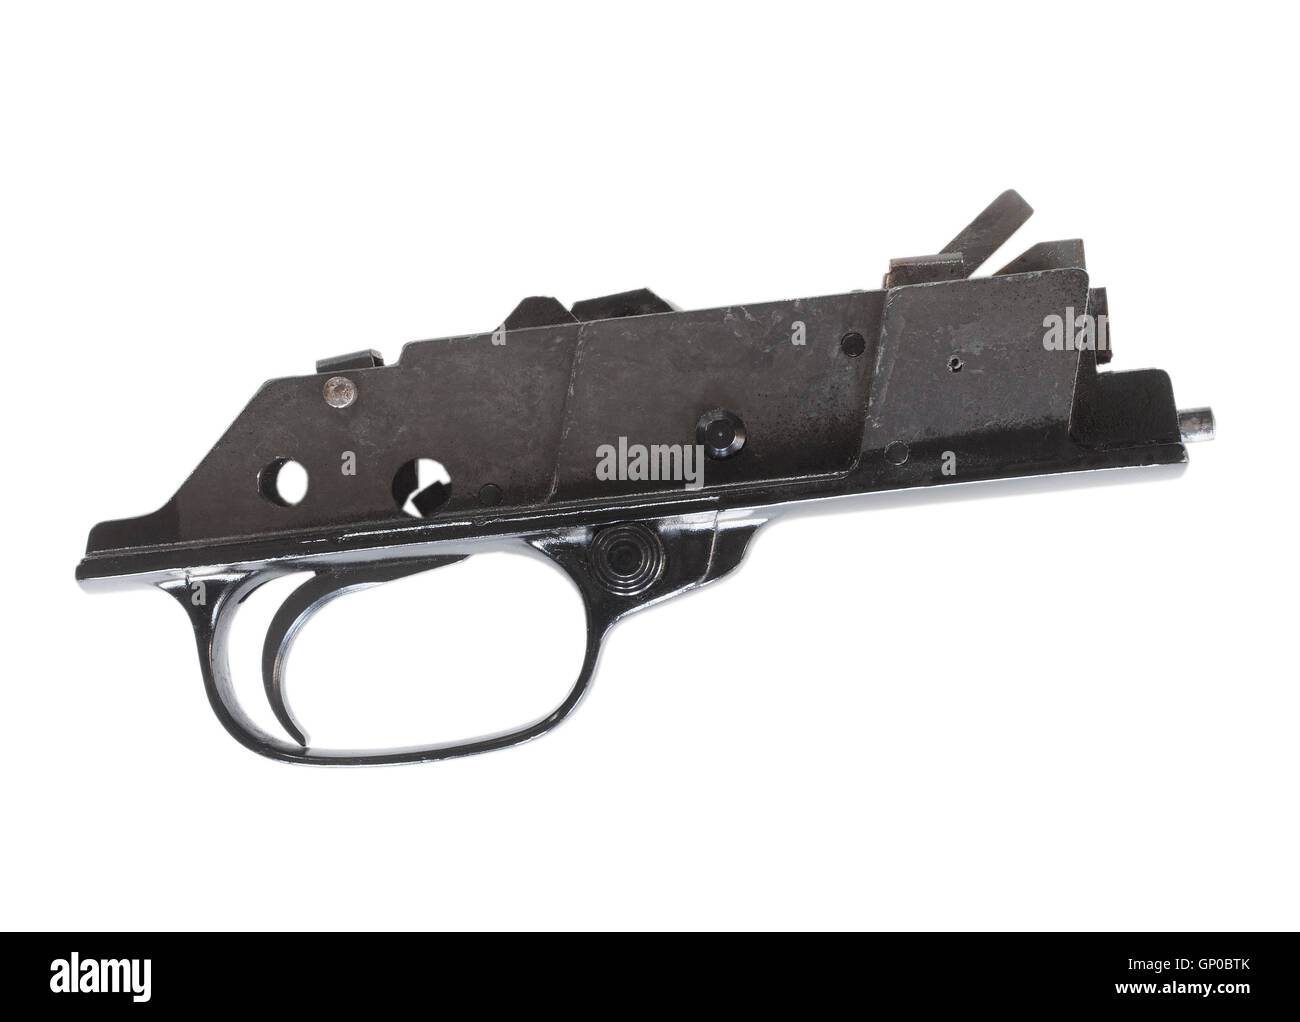 Trigger group and mechanism from a rifle seen from the side on white - Stock Image